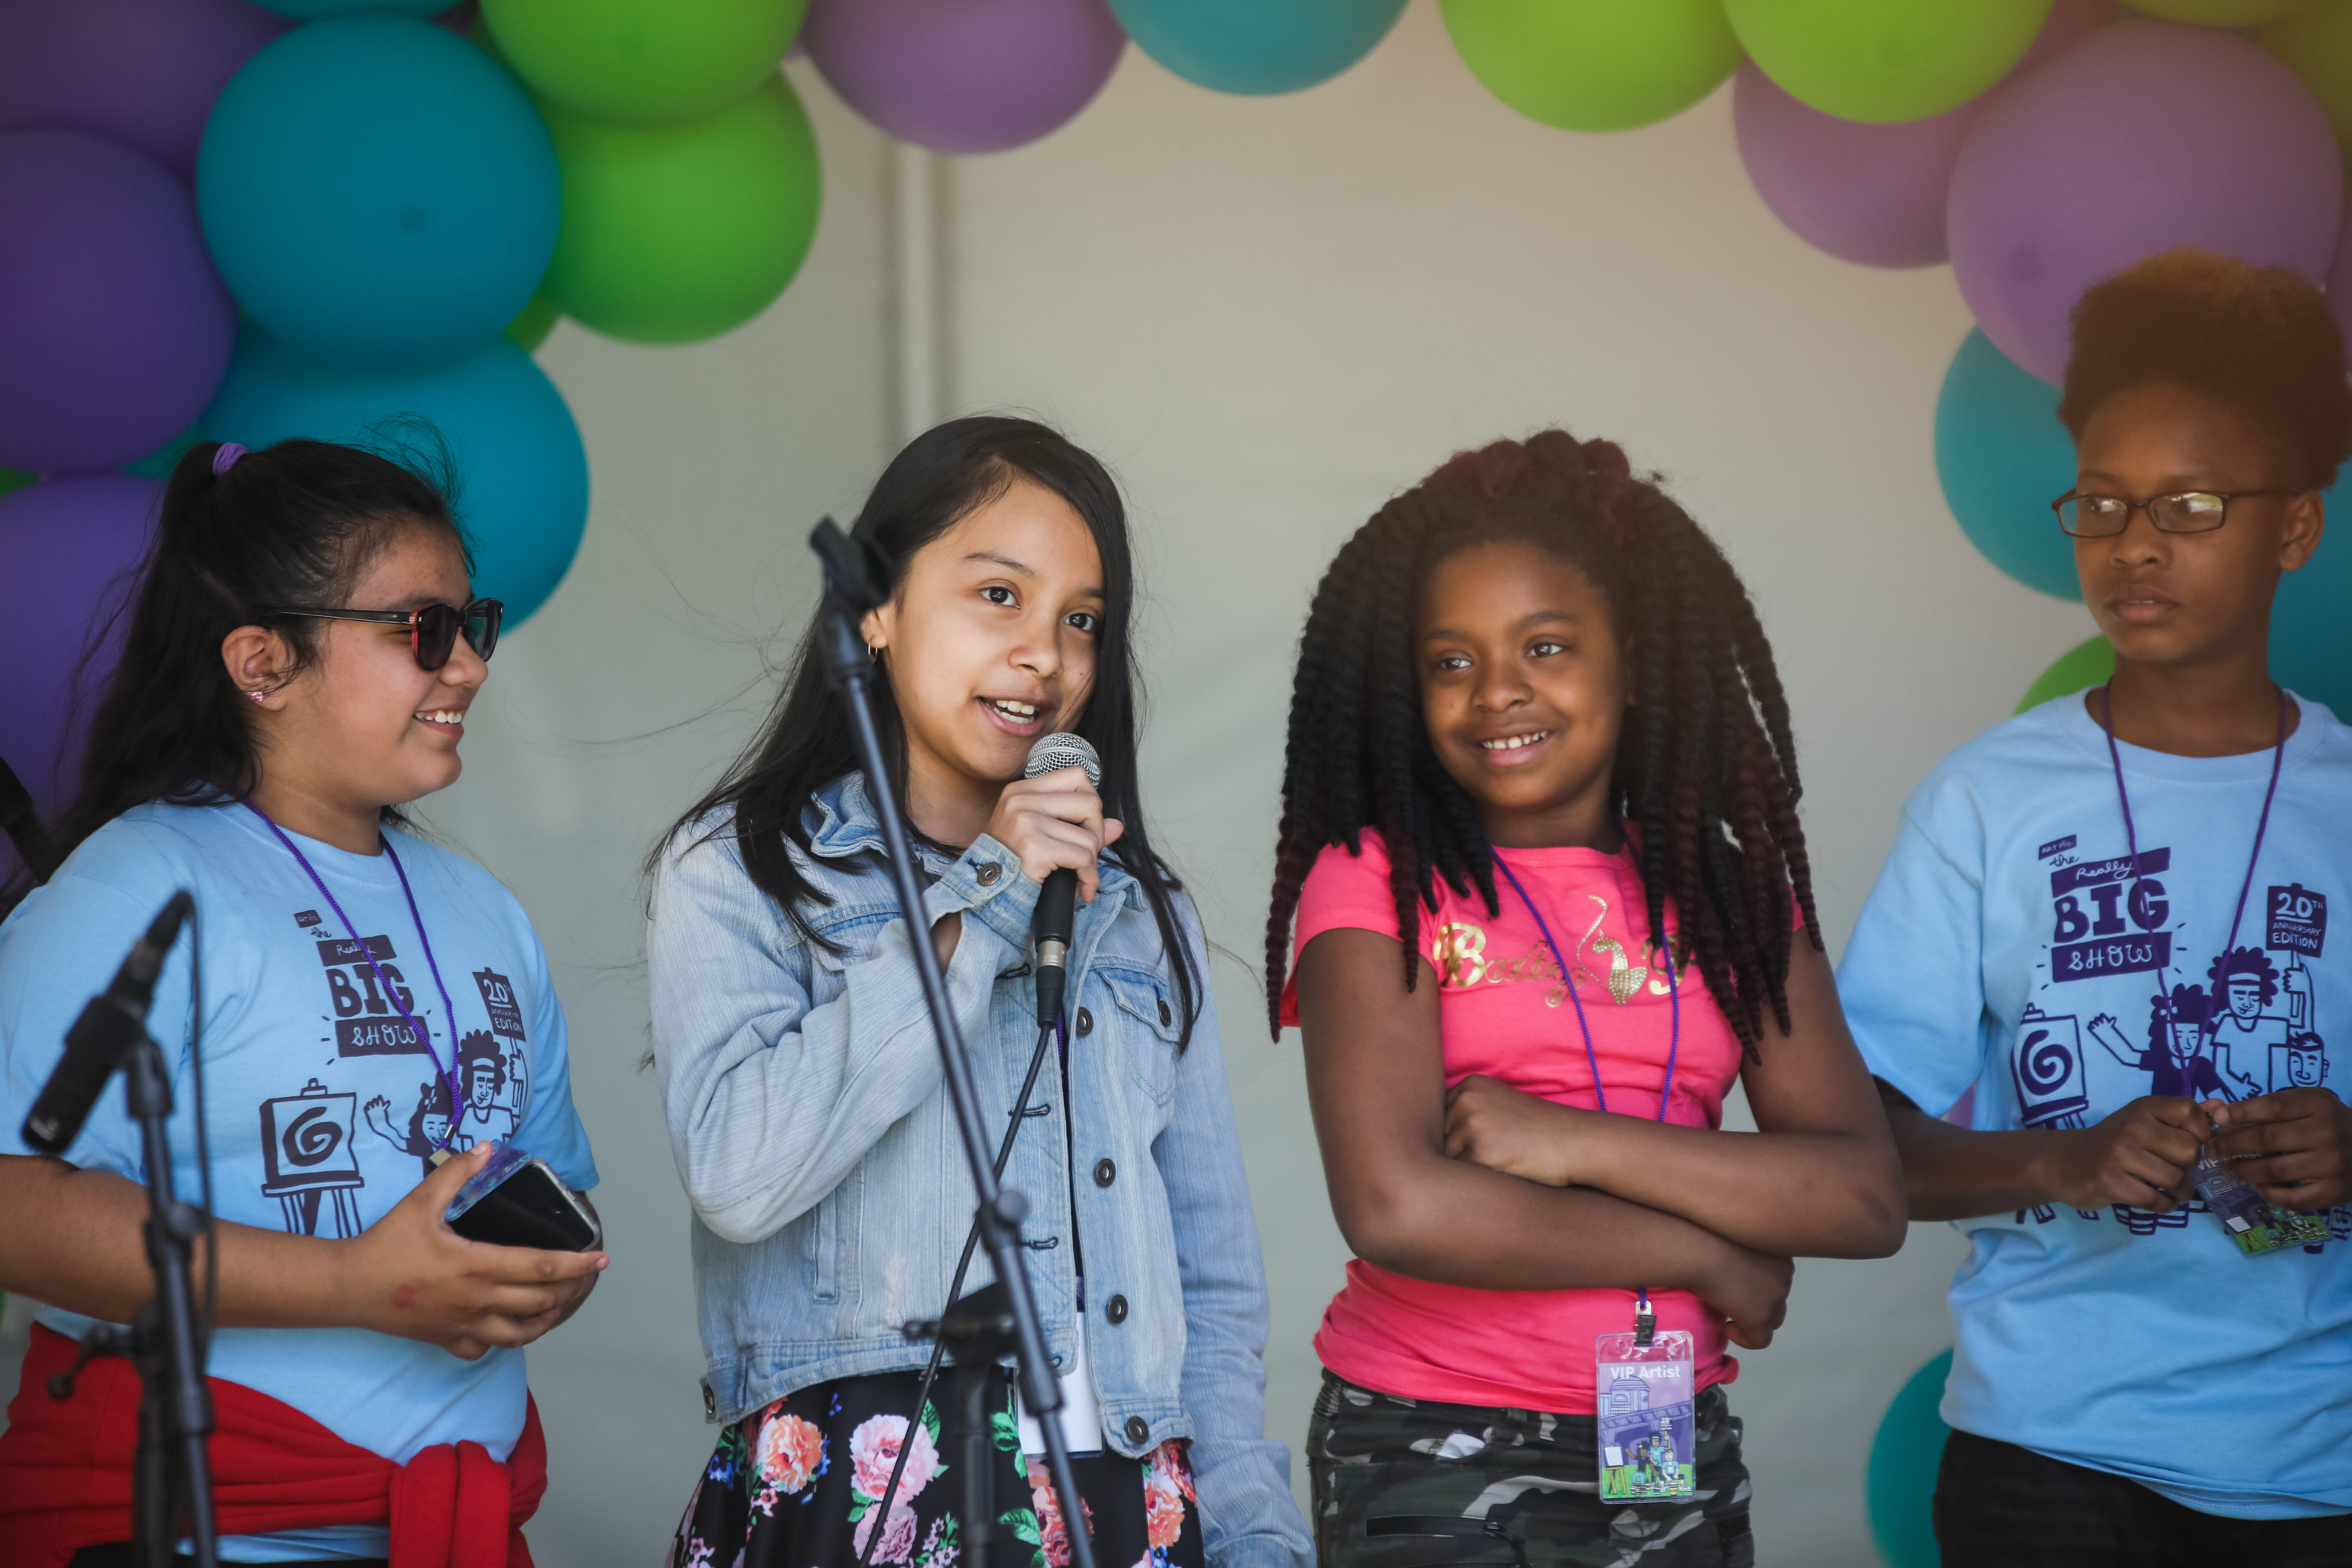 The Really Big Show Is A Community Block Party Celebrating Kids And The Arts